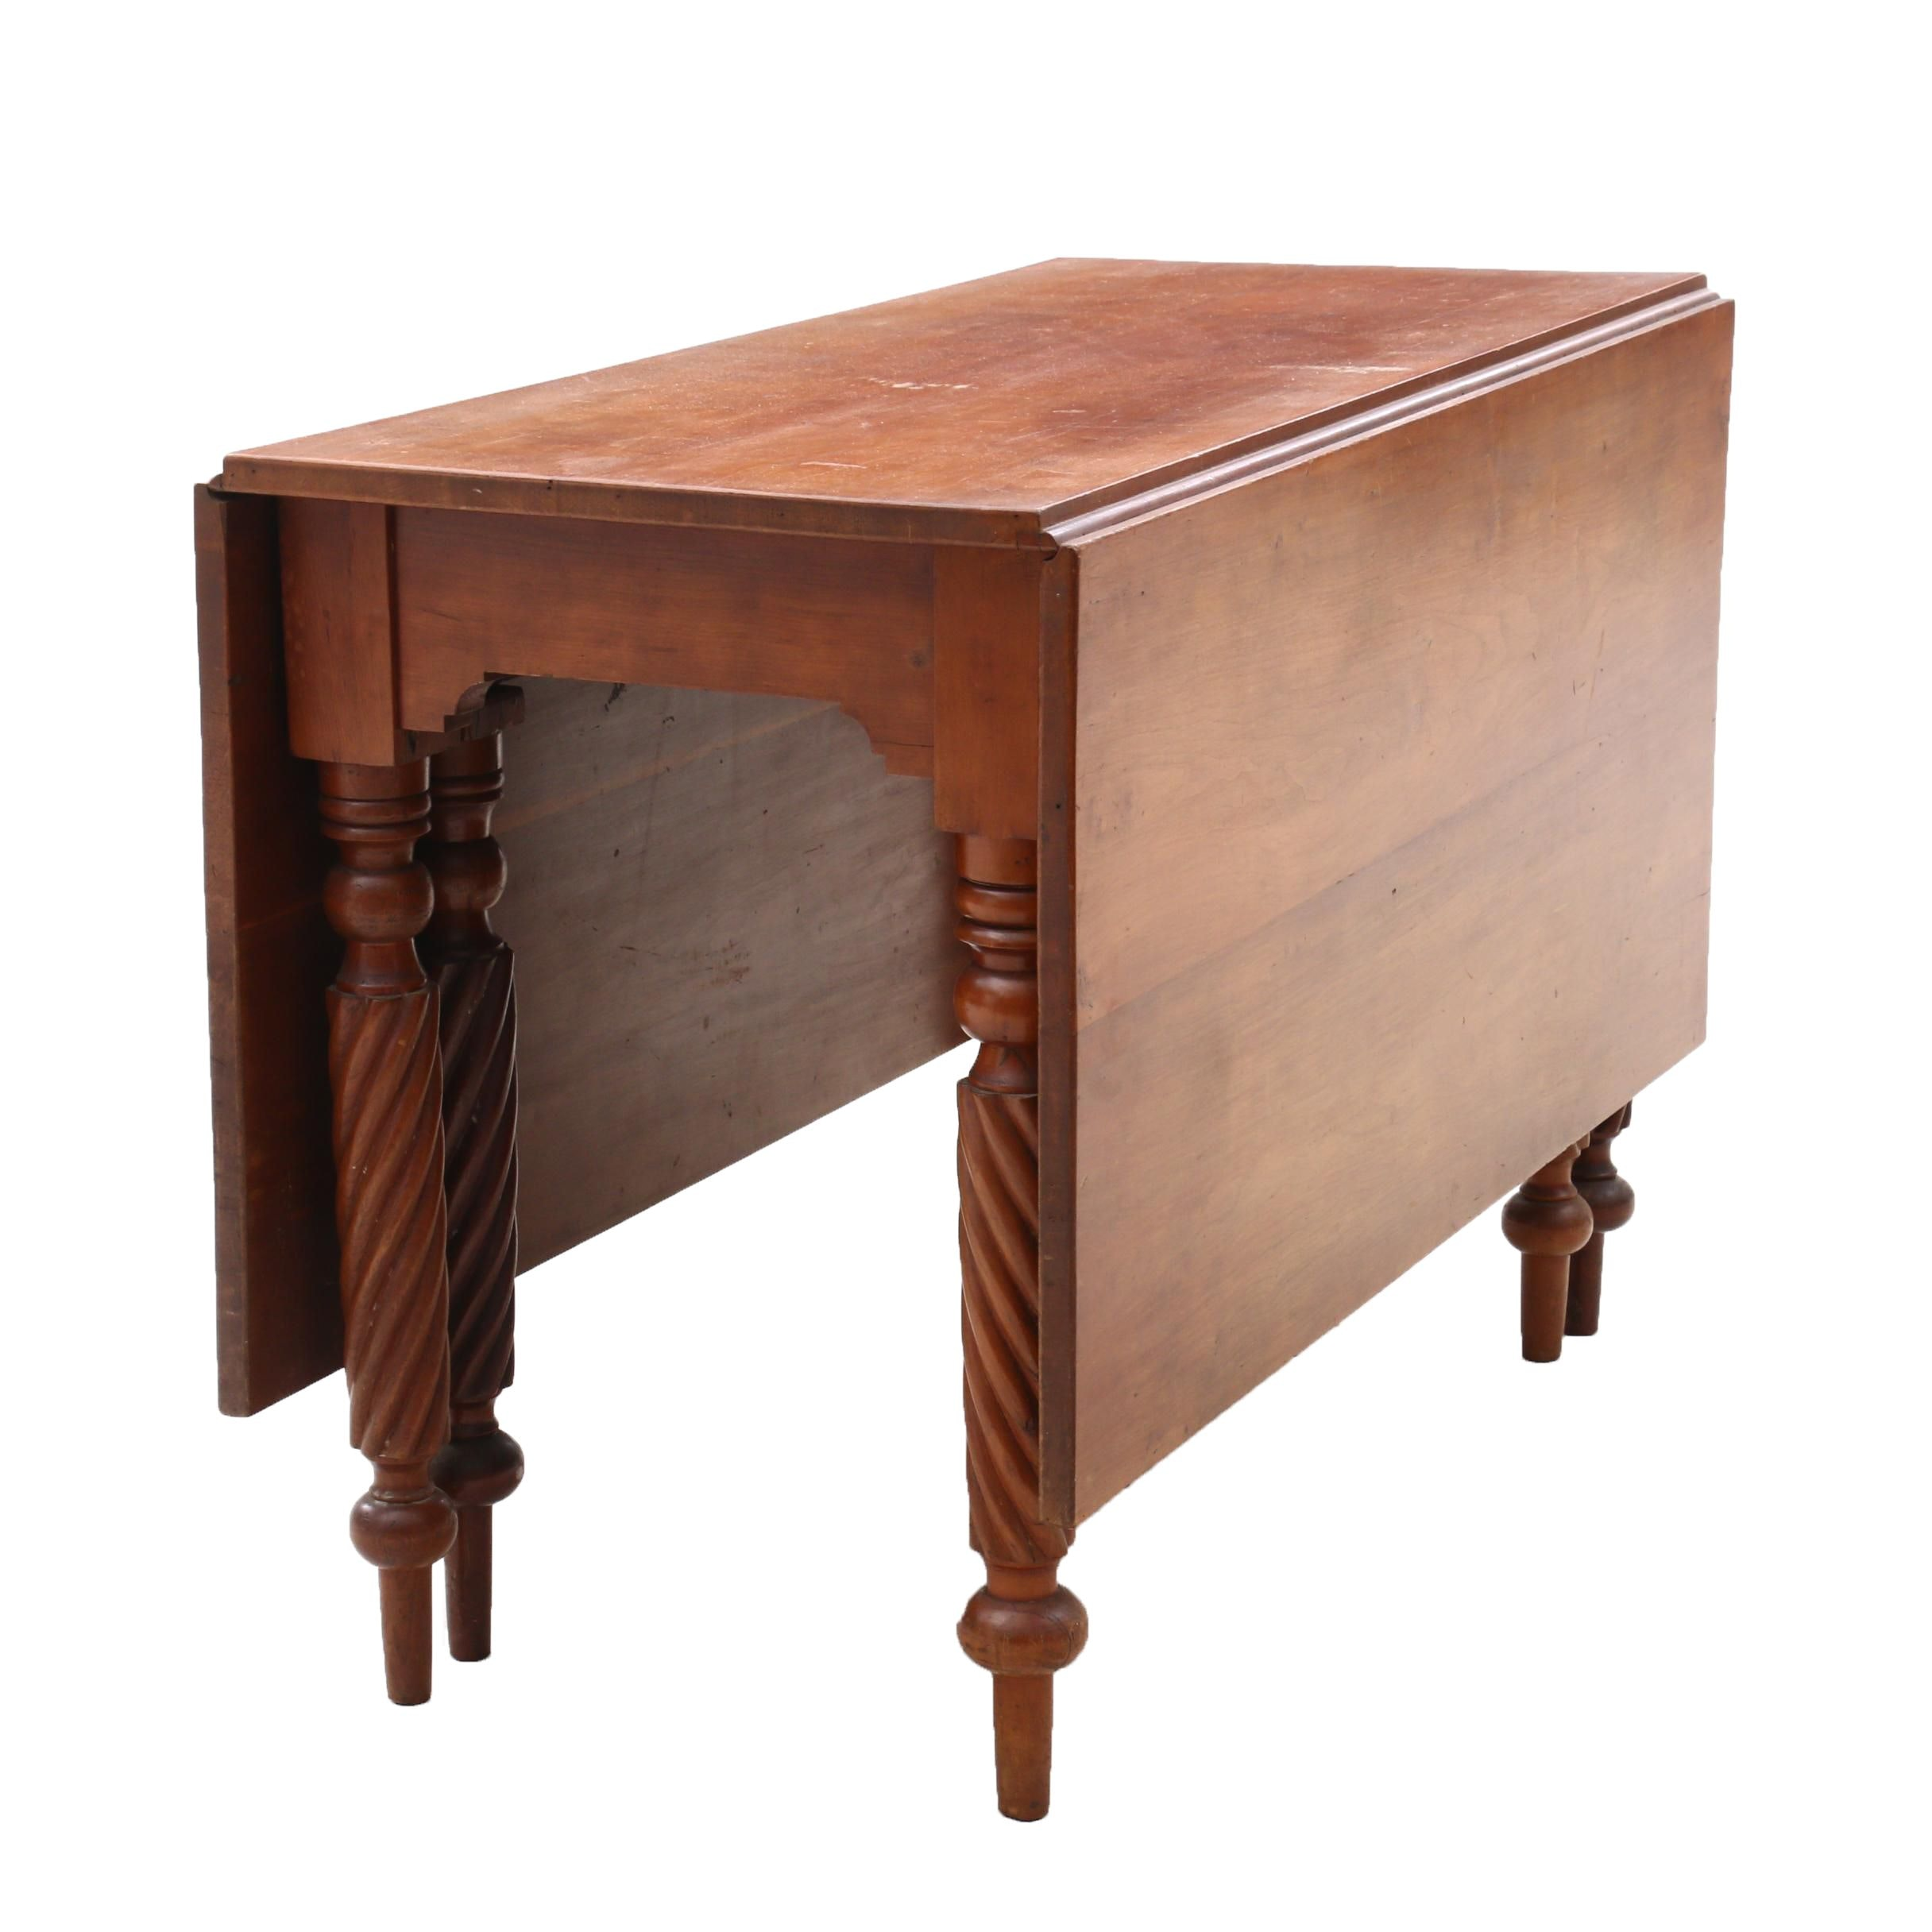 Rope-Leg Cherry Drop-Leaf Dining Table